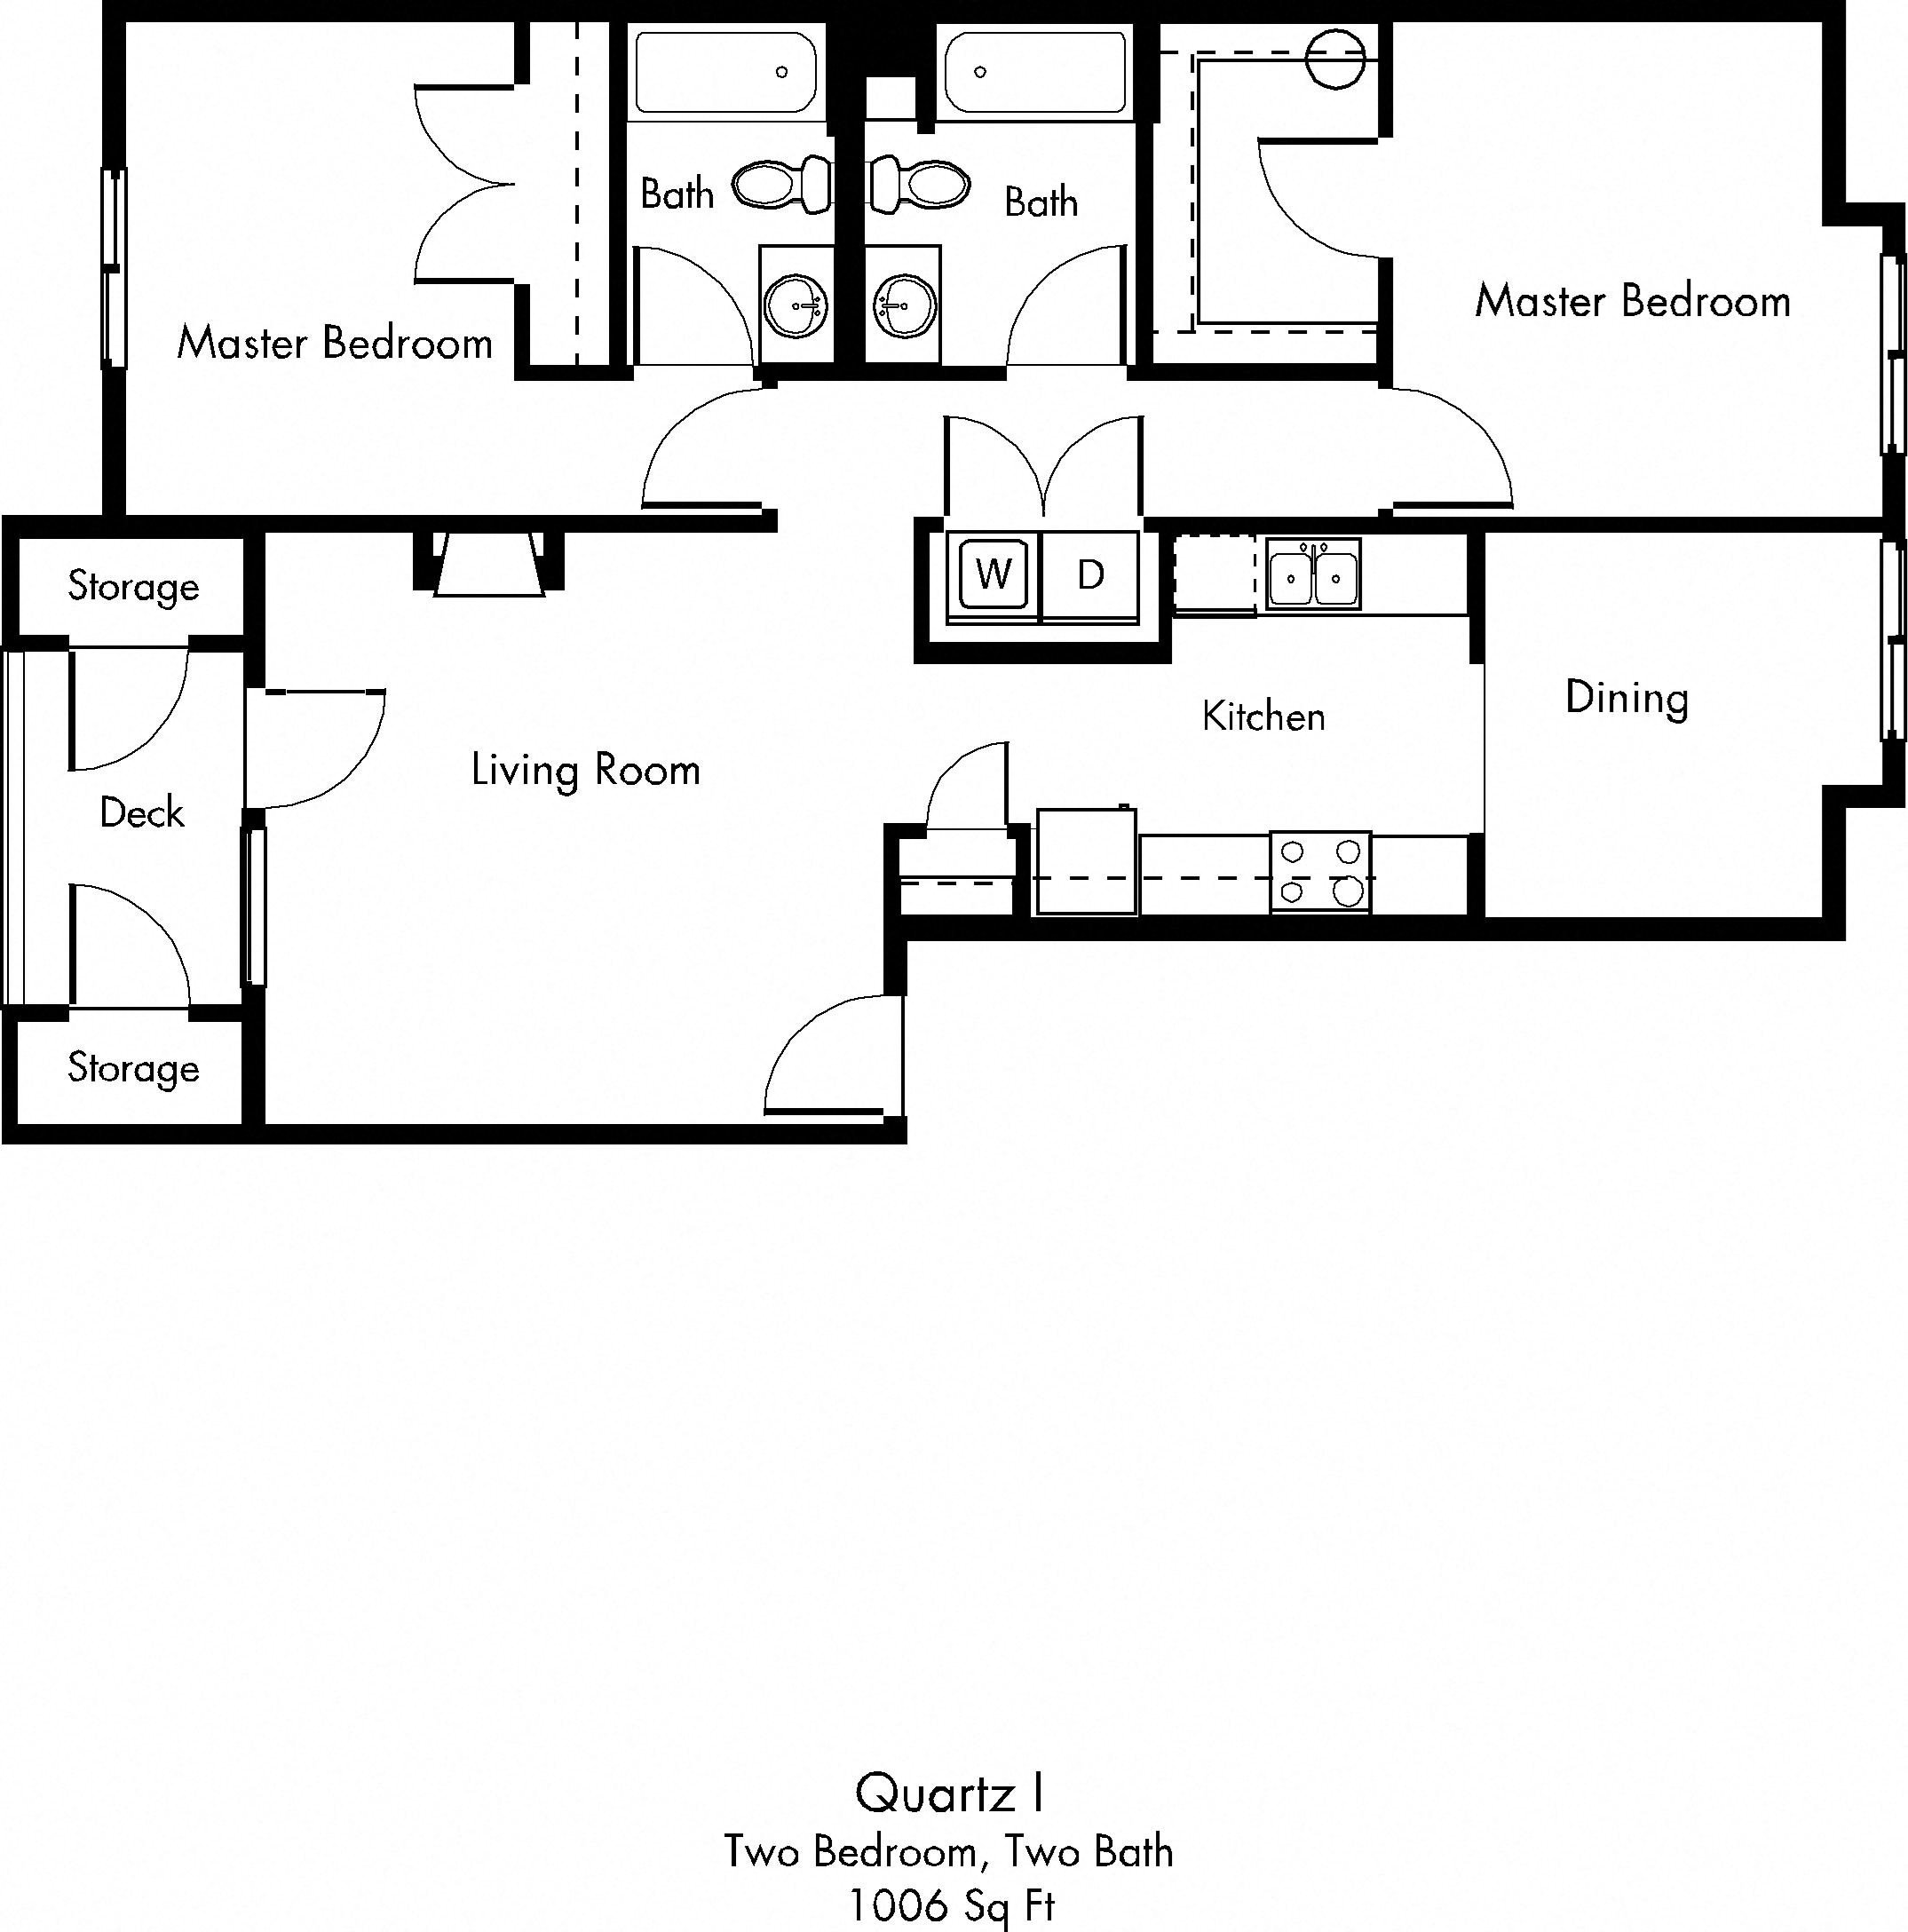 Quartz I Floor Plan 16